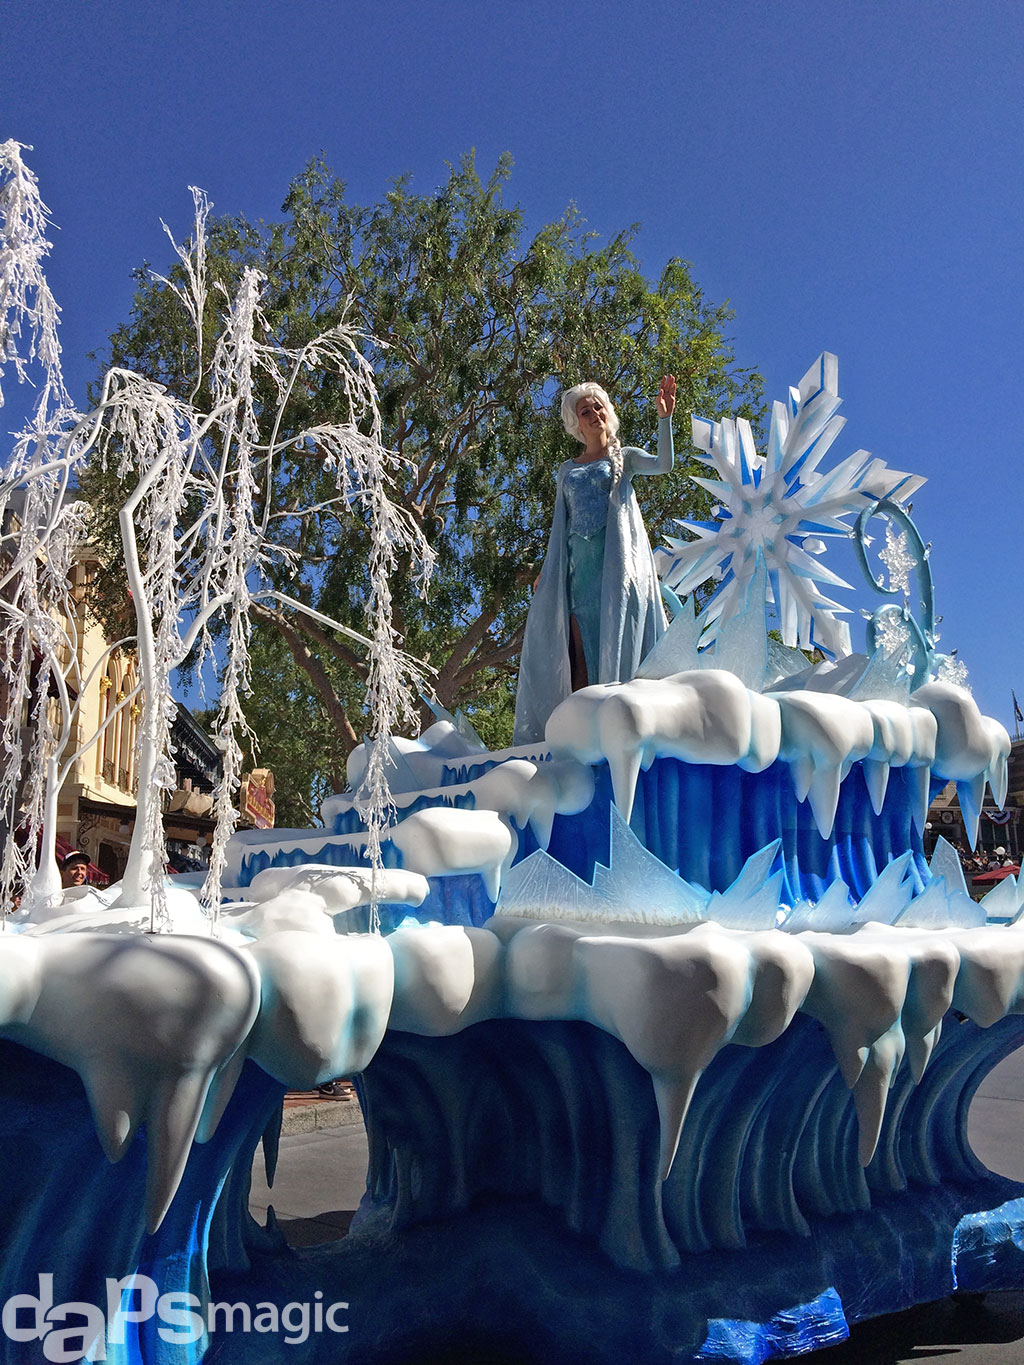 Elsa in the Frozen Pre-Parade at Disneyland